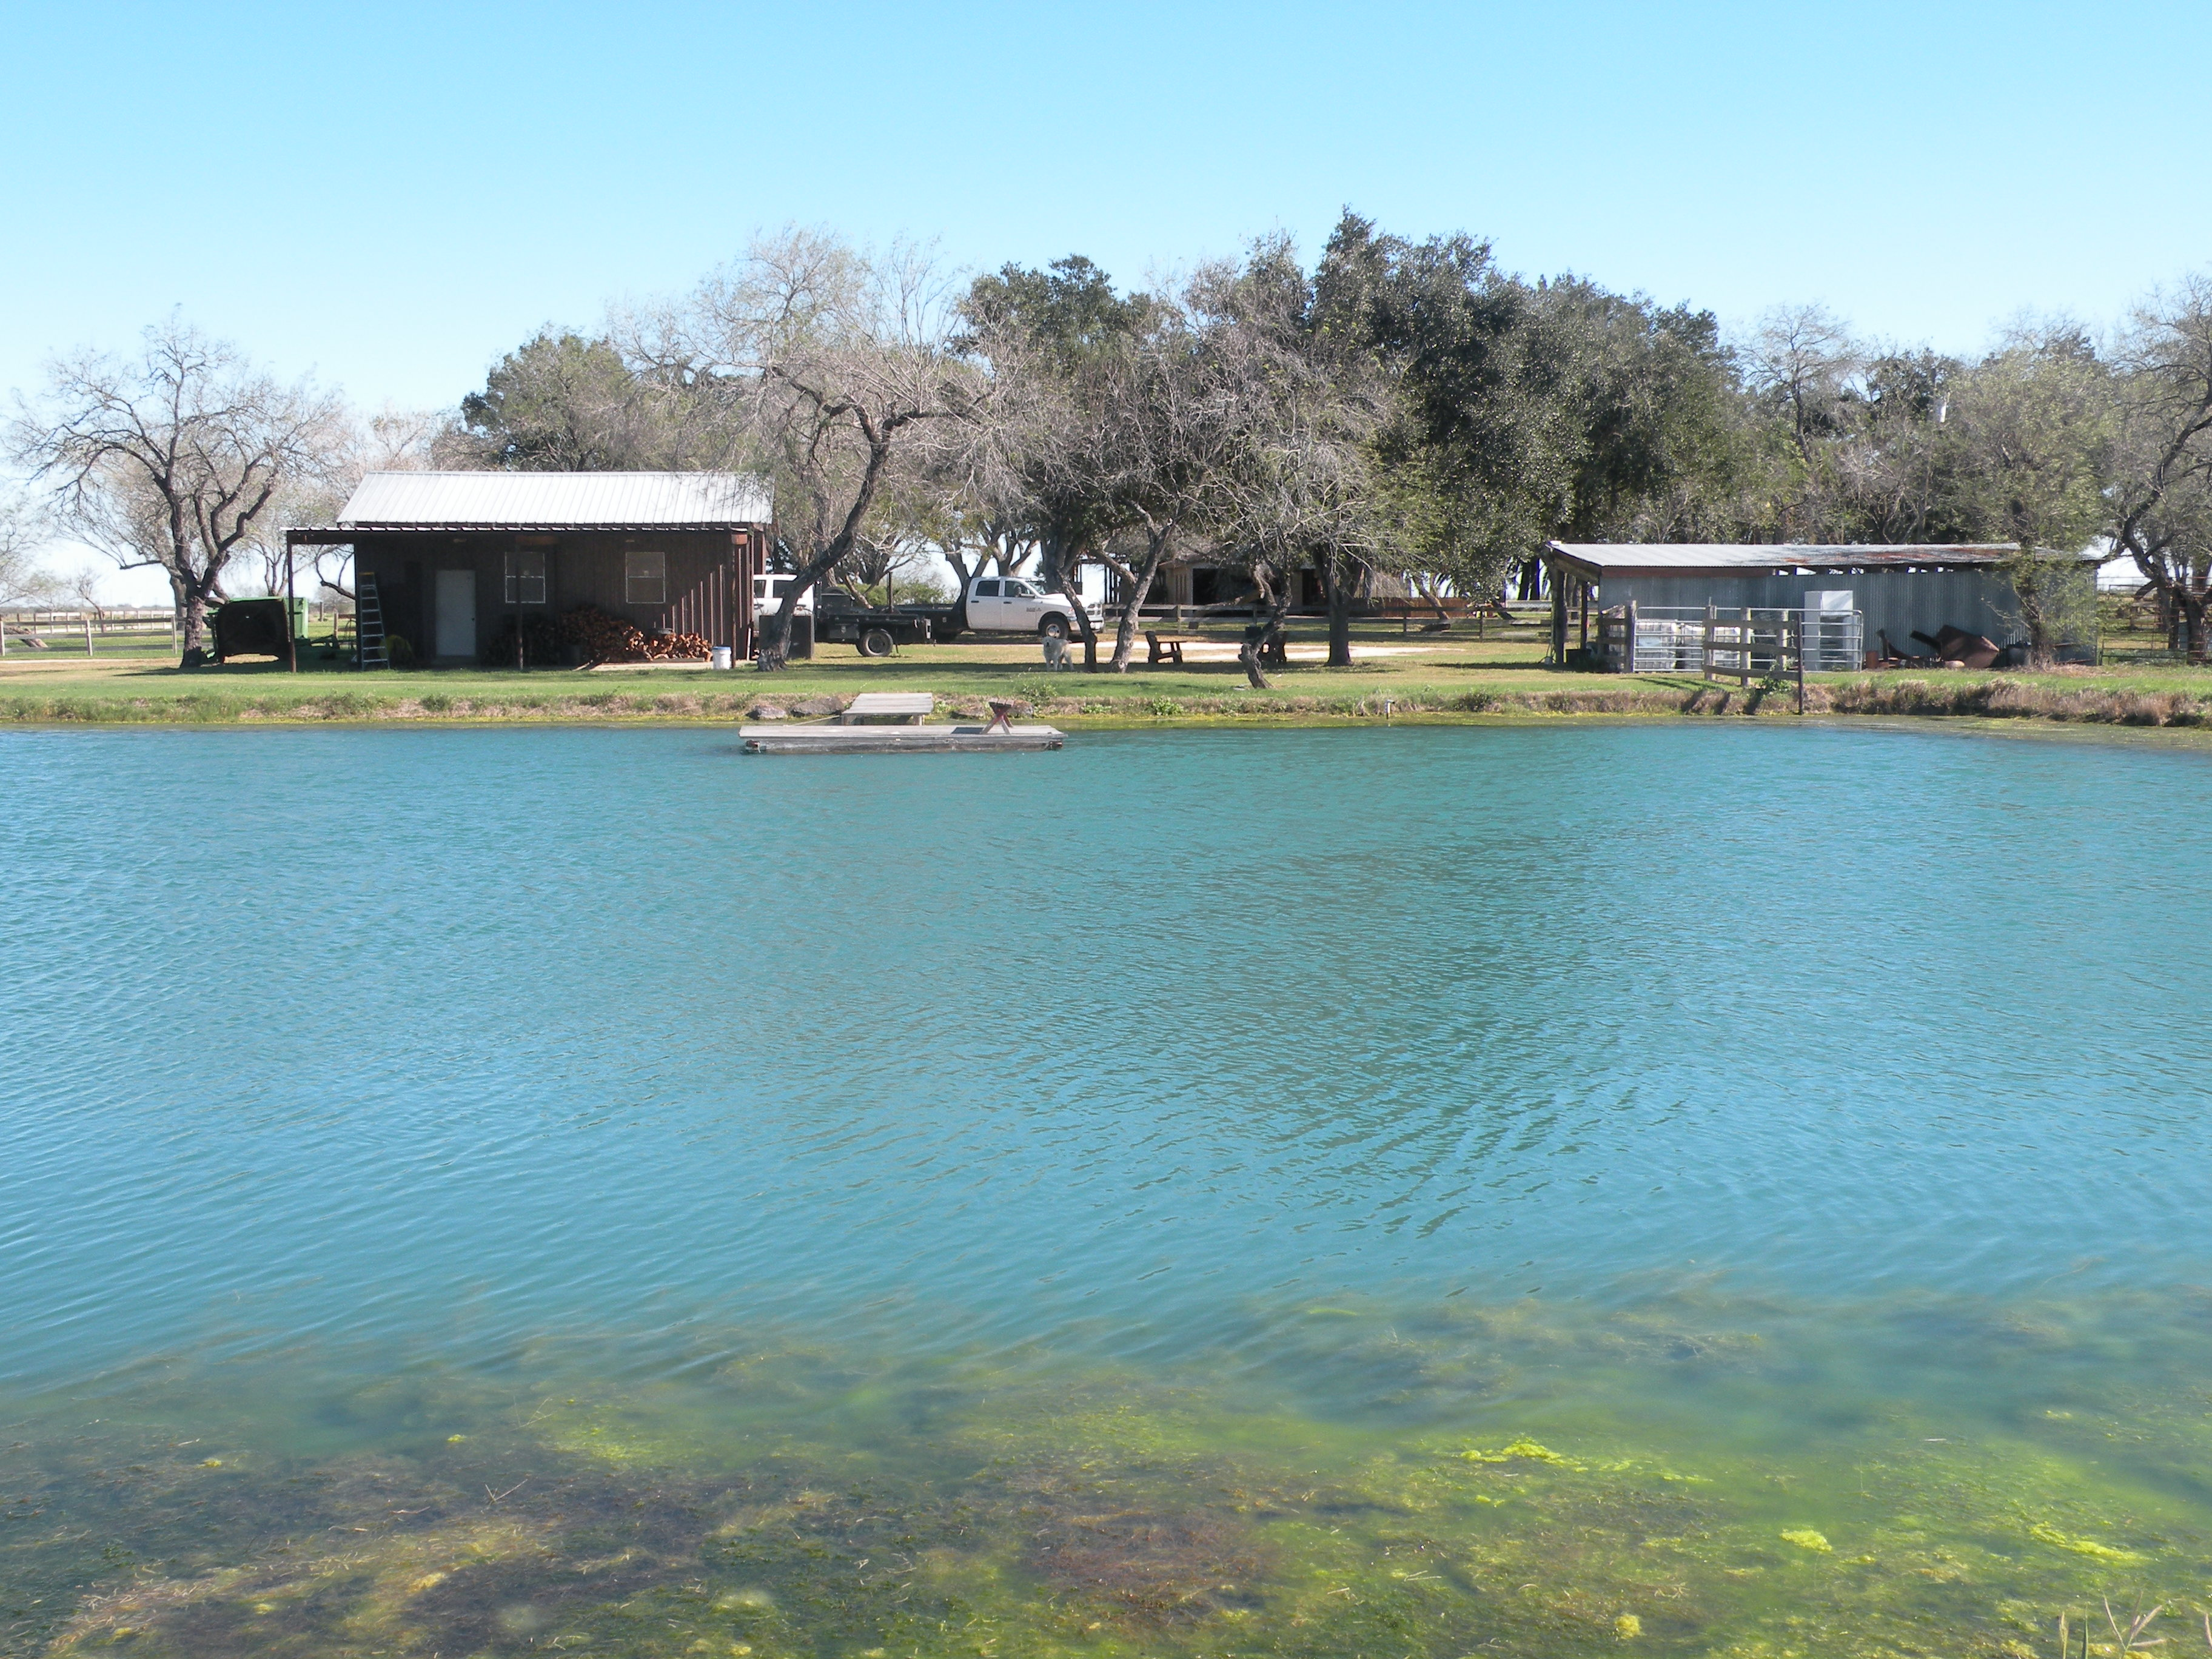 View of Catfish Lake, Shed & Home